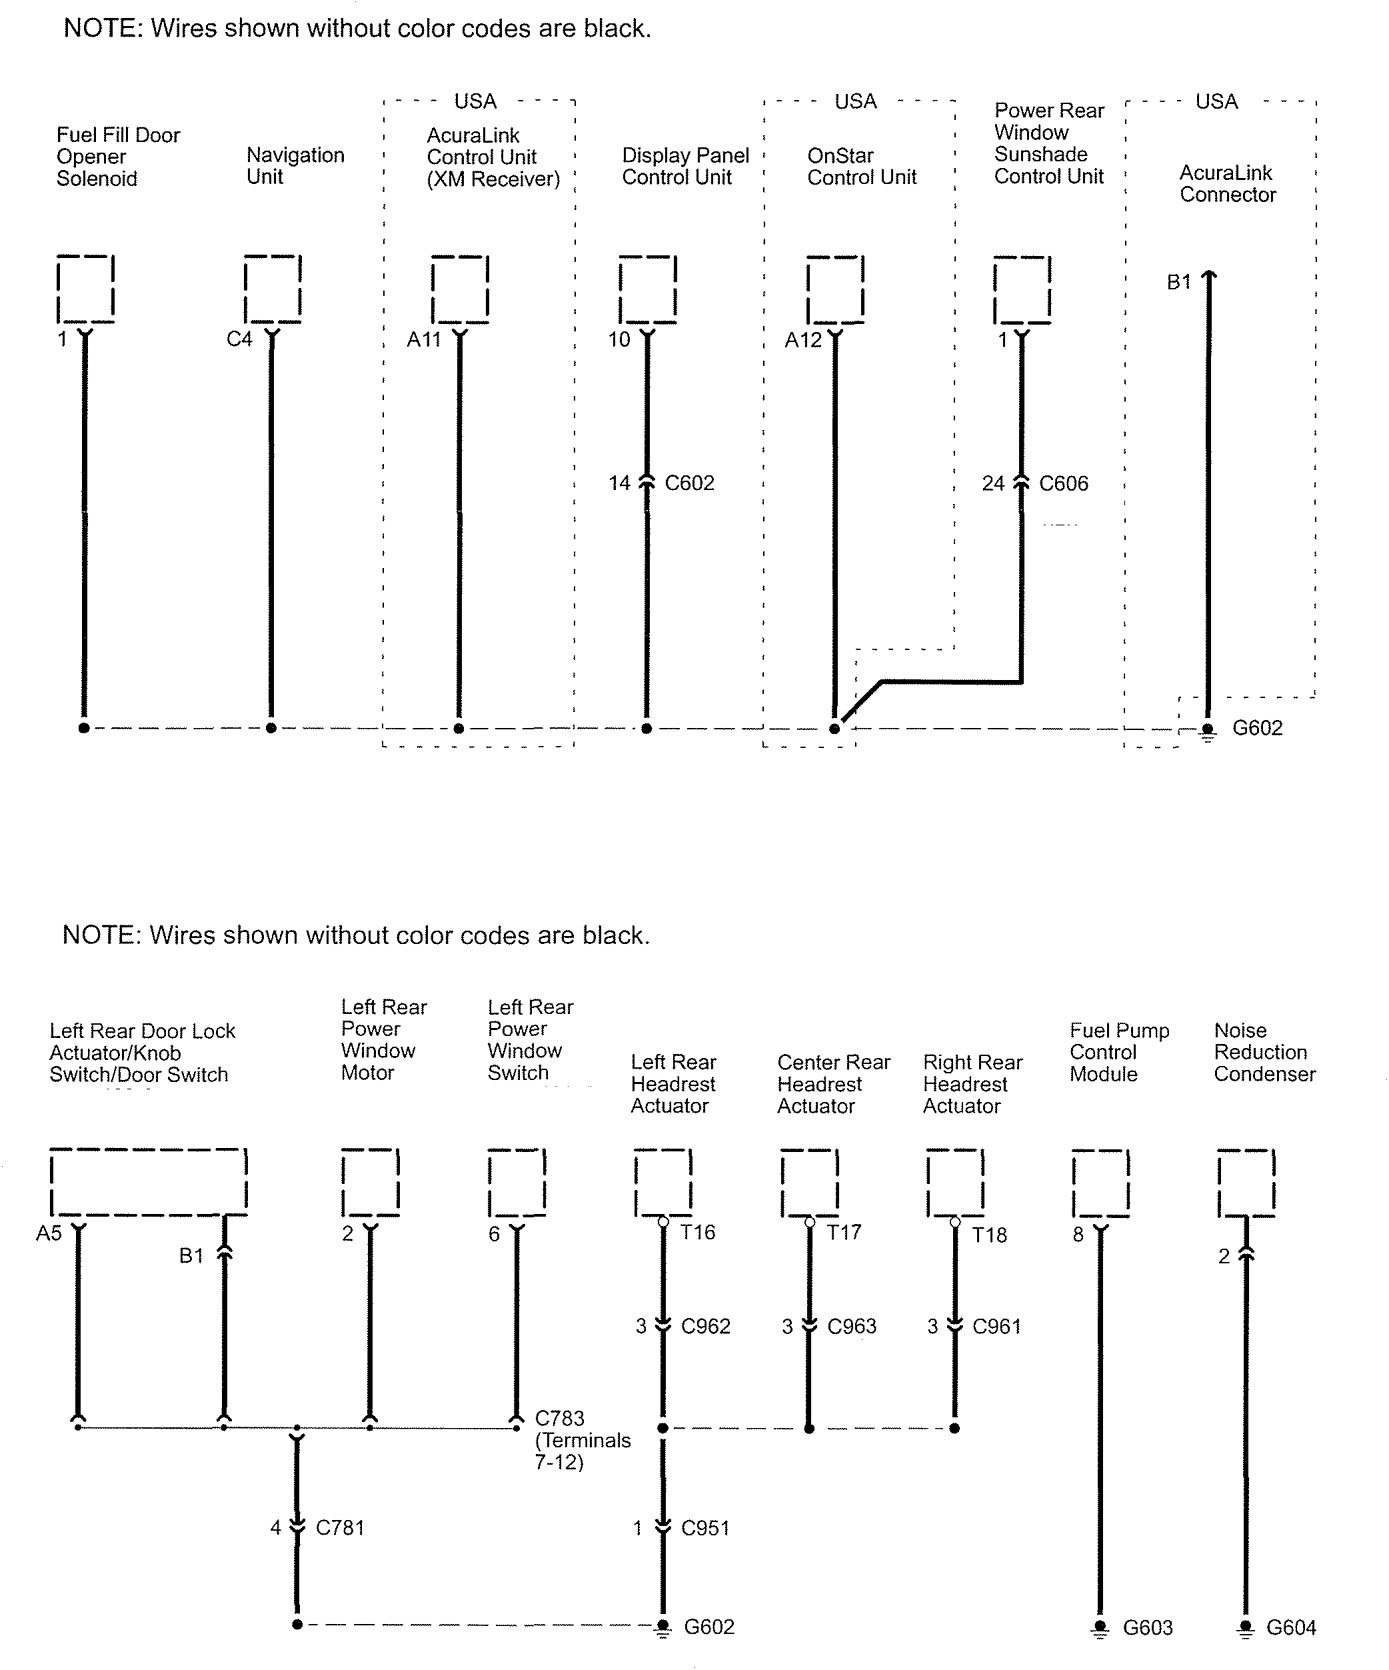 2002 pontiac aztek stereo wiring diagram leviton 3 way switch with pilot light fuse library